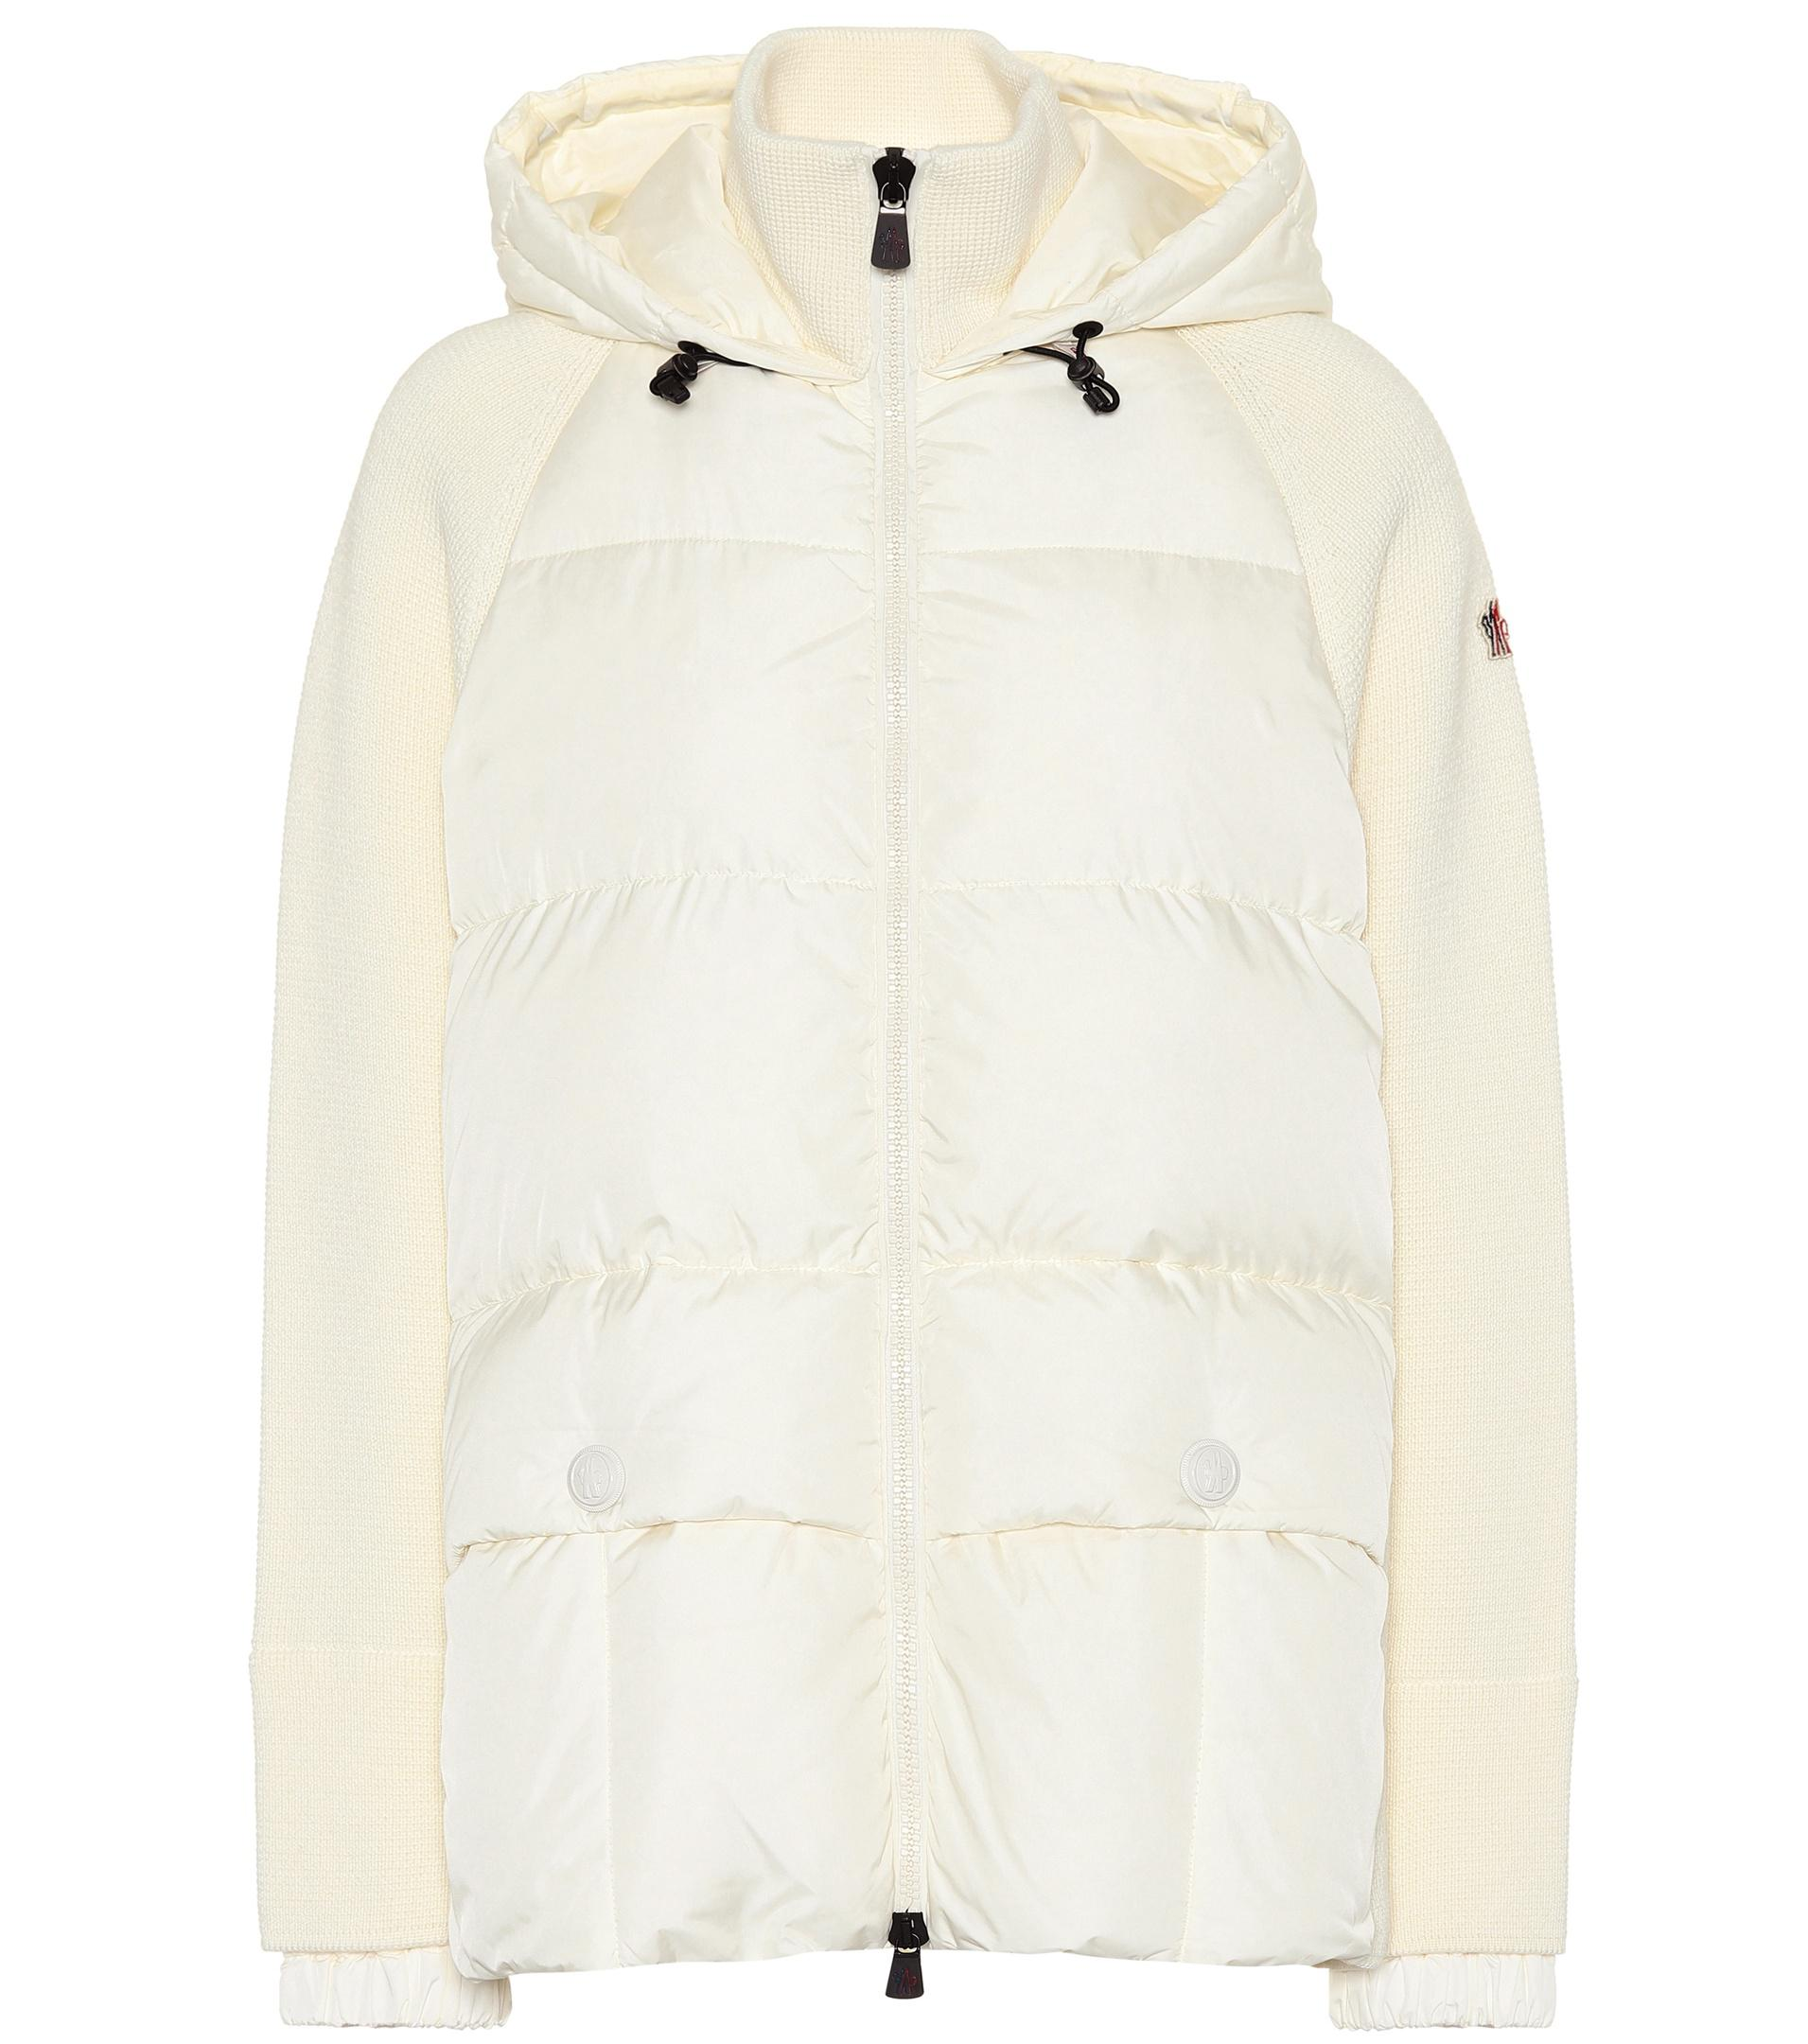 d250a2343 Lyst - Moncler Grenoble Down Ski Jacket in White